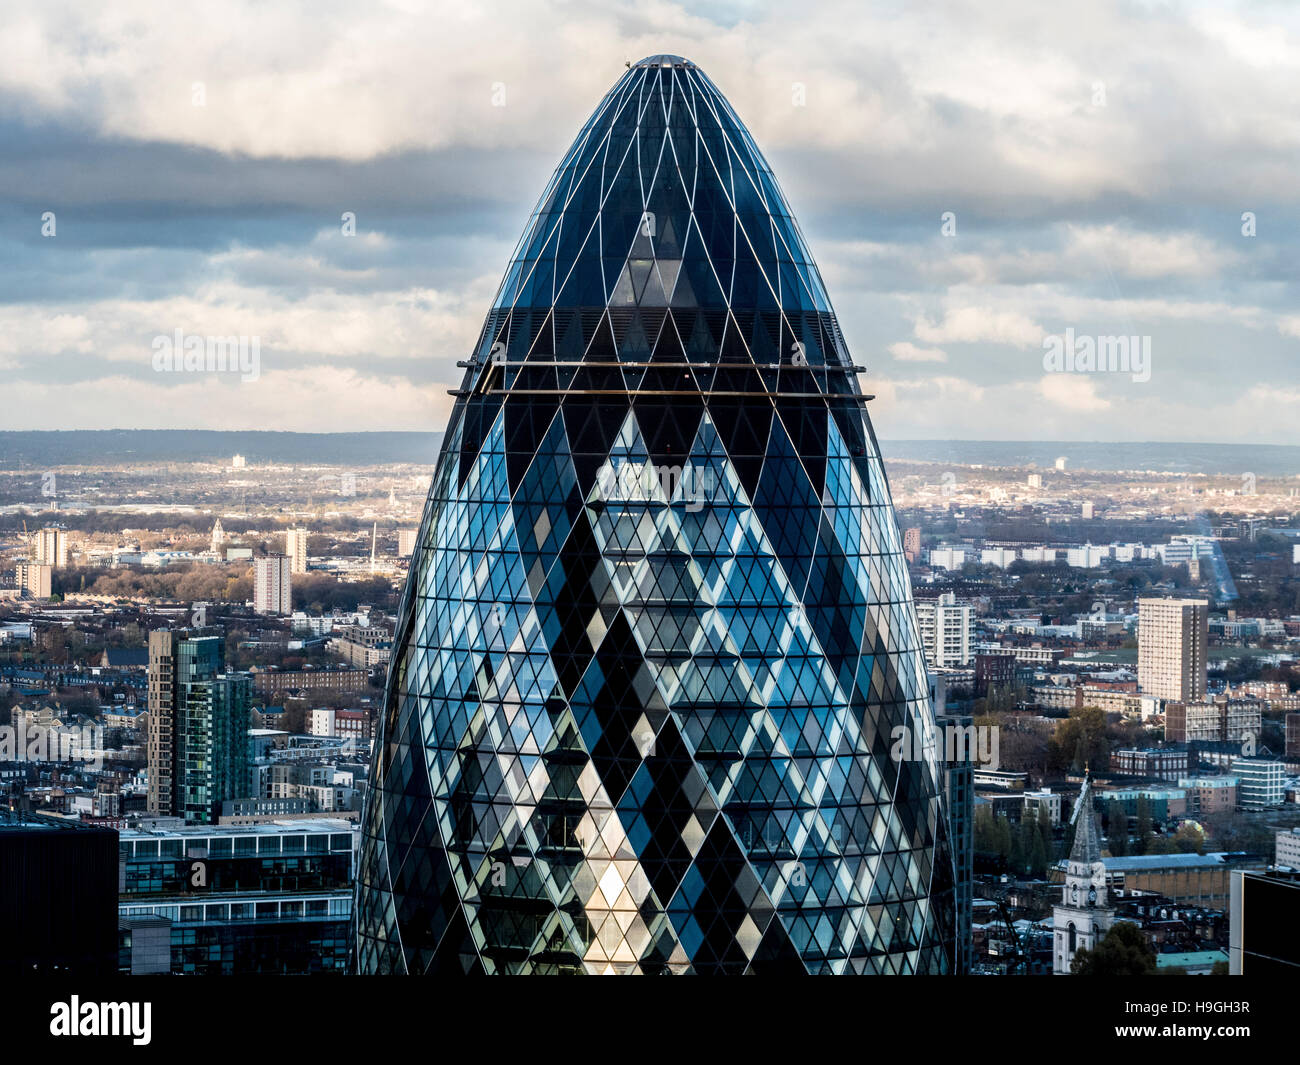 The Gherkin building, London, UK. - Stock Image